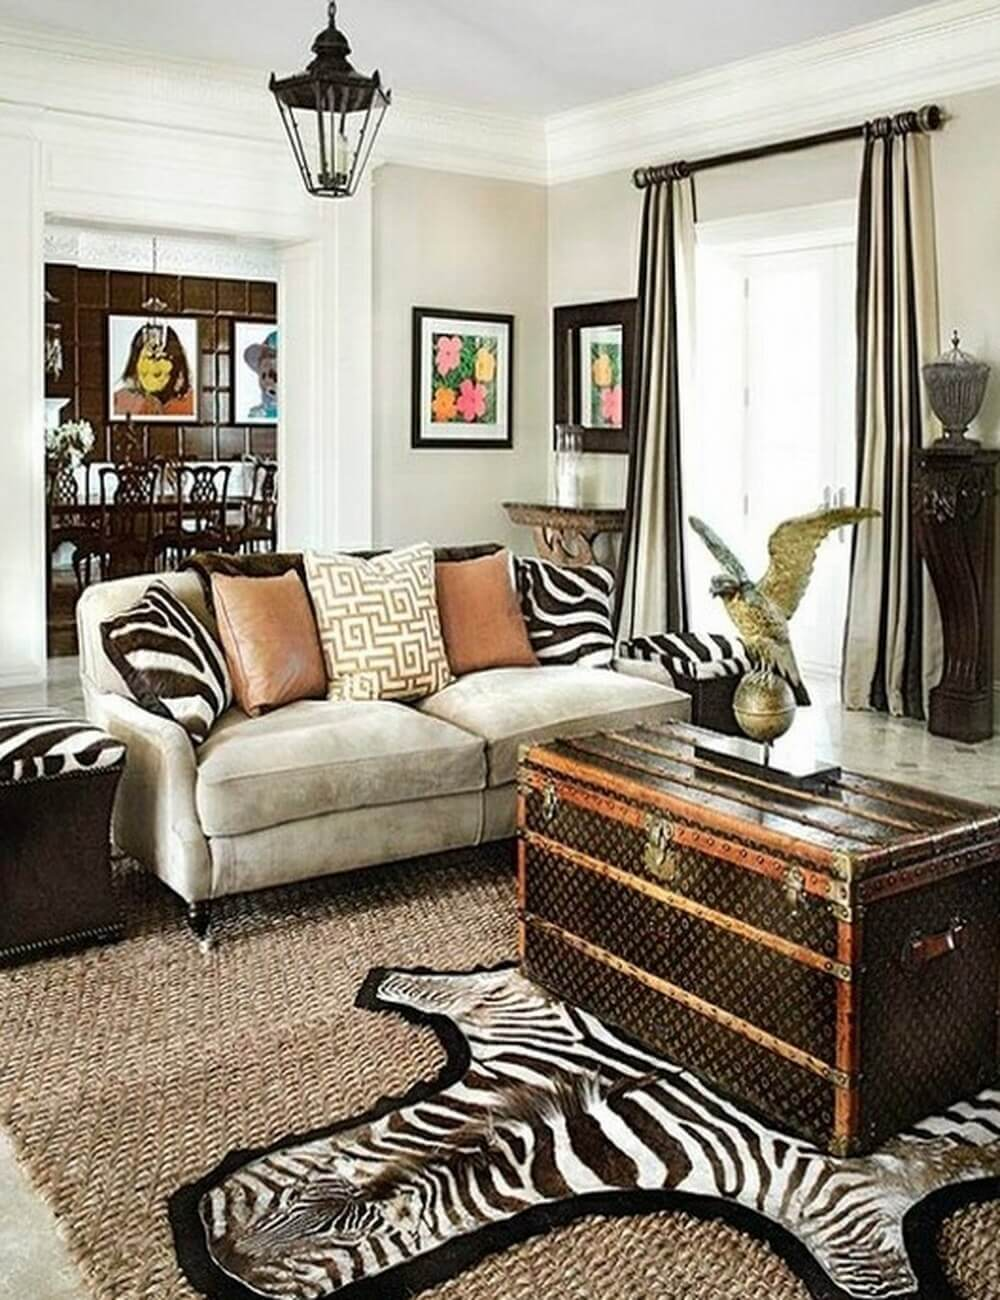 10 fierce interior design ideas with zebra print accent for Interior home accents